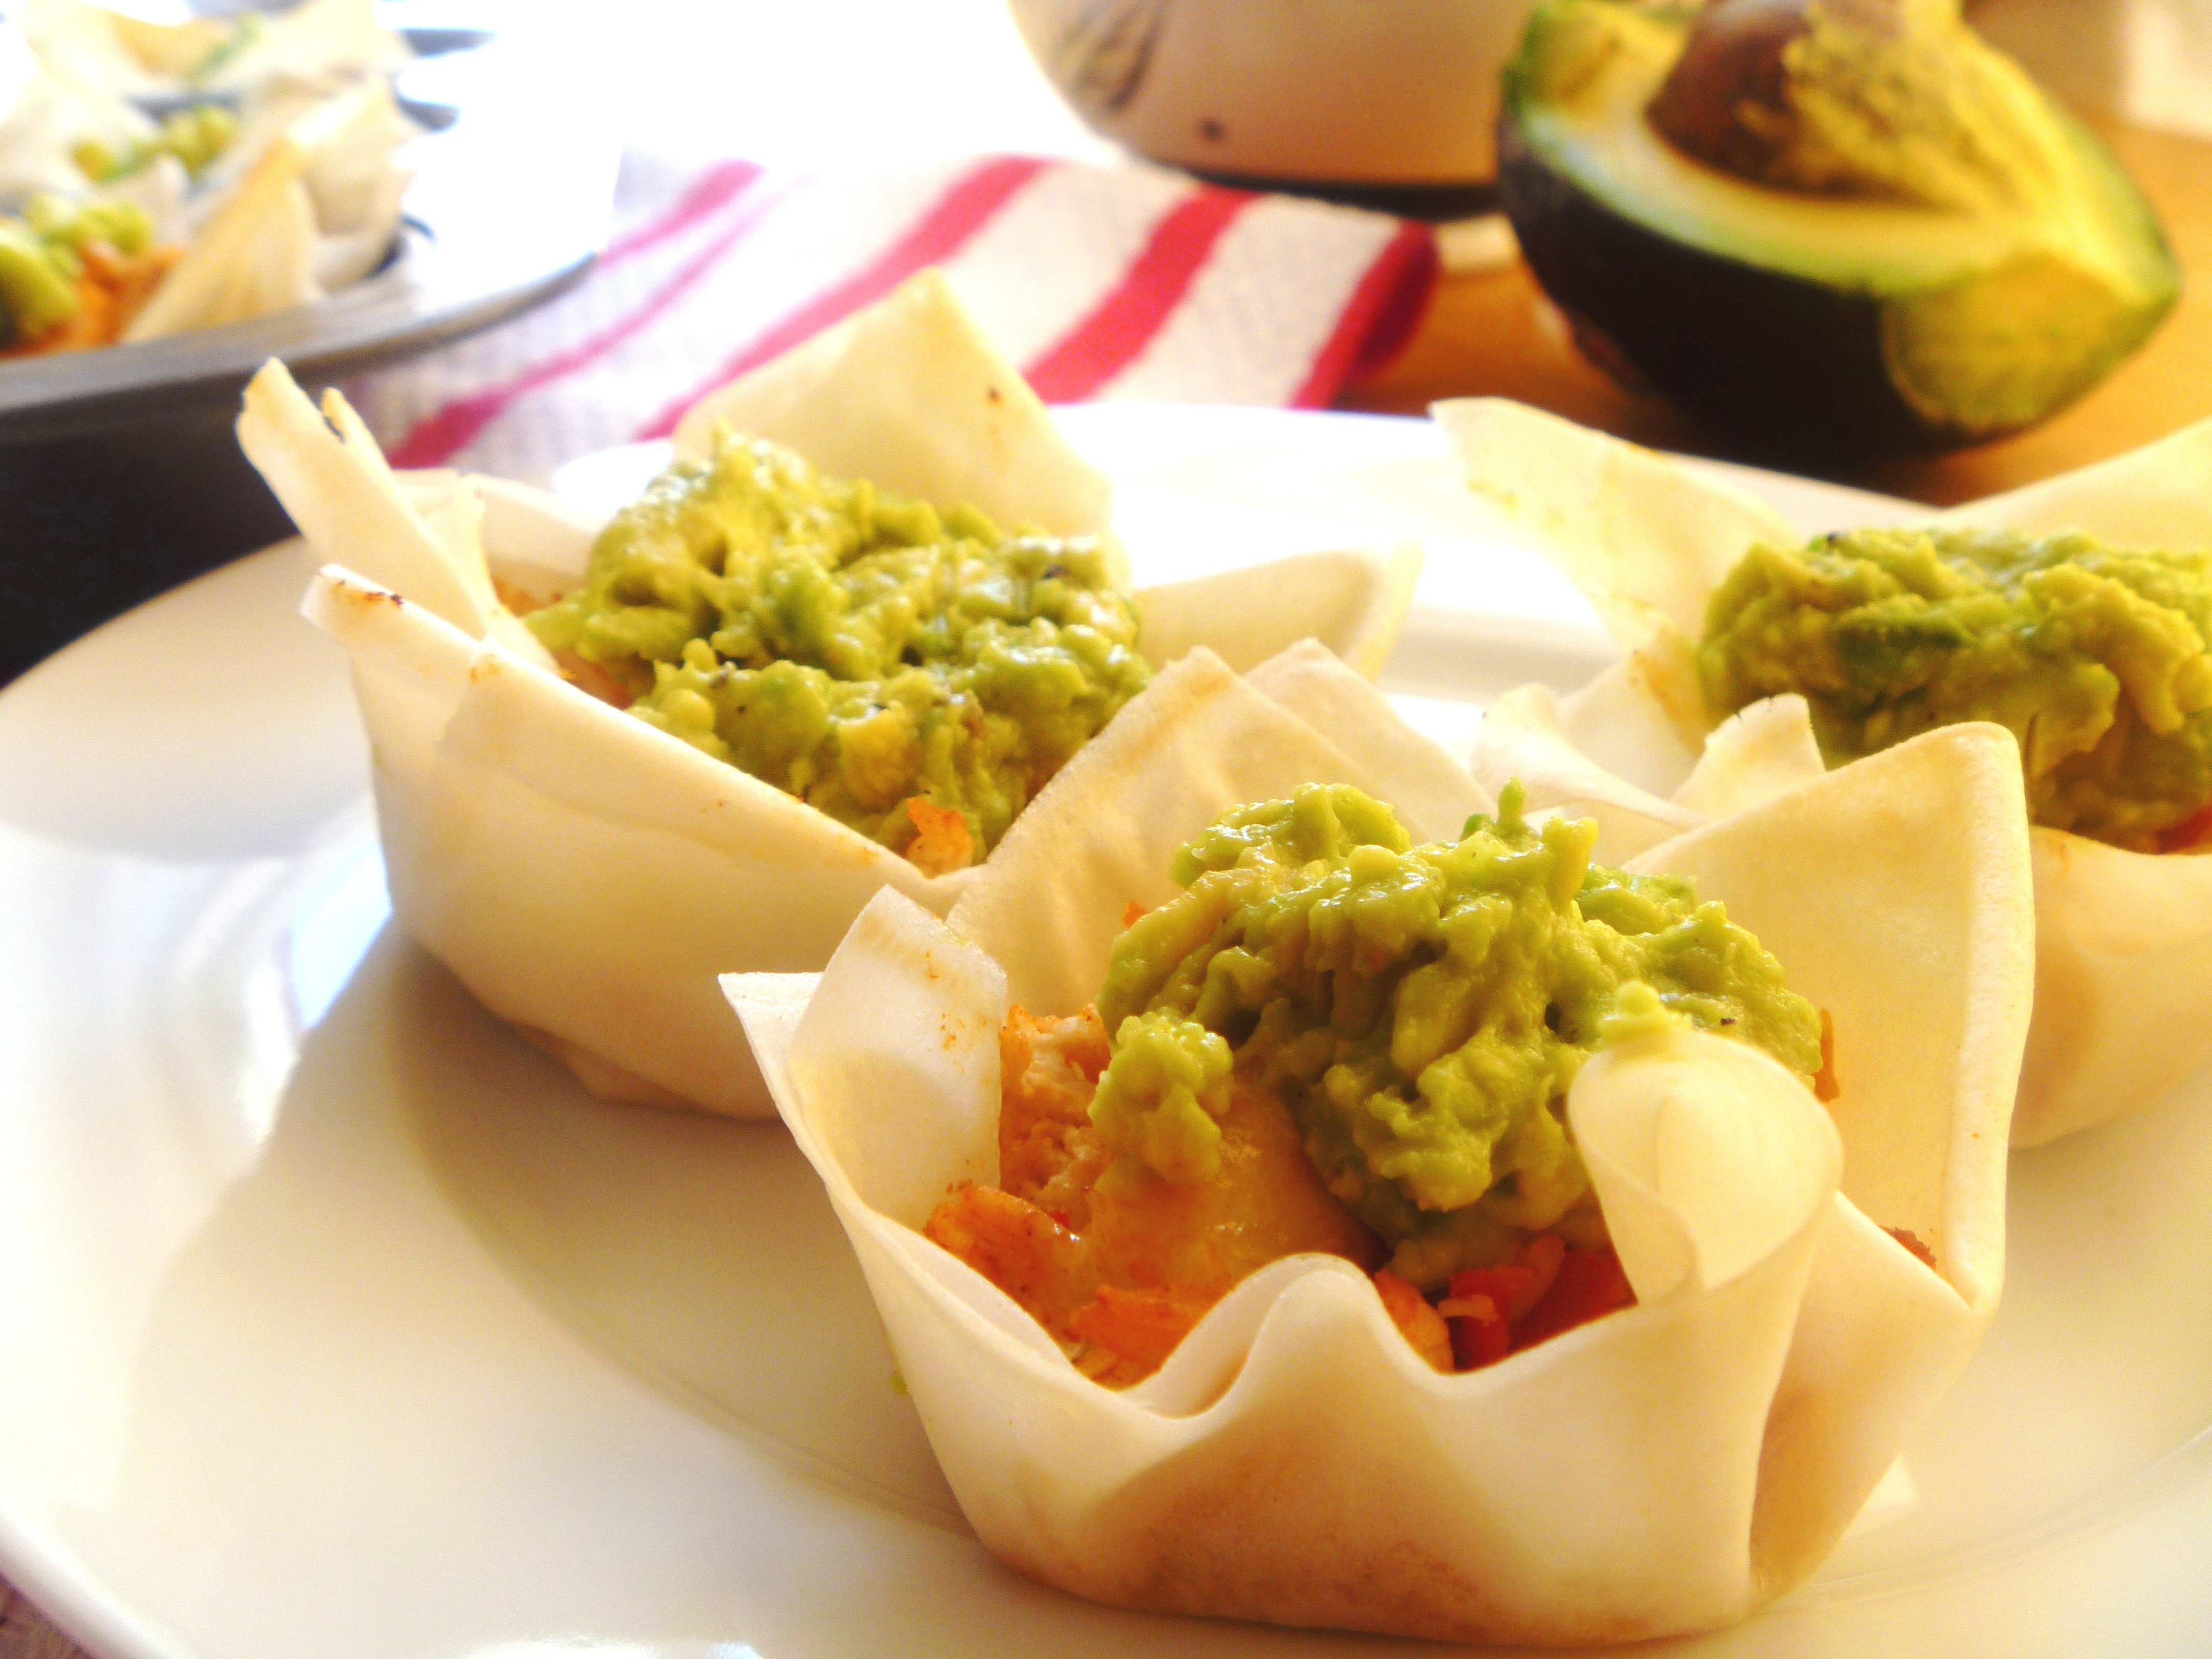 Healthy Appetizers For Party  Super Bowl Sunday Healthy Appetizer Ideas